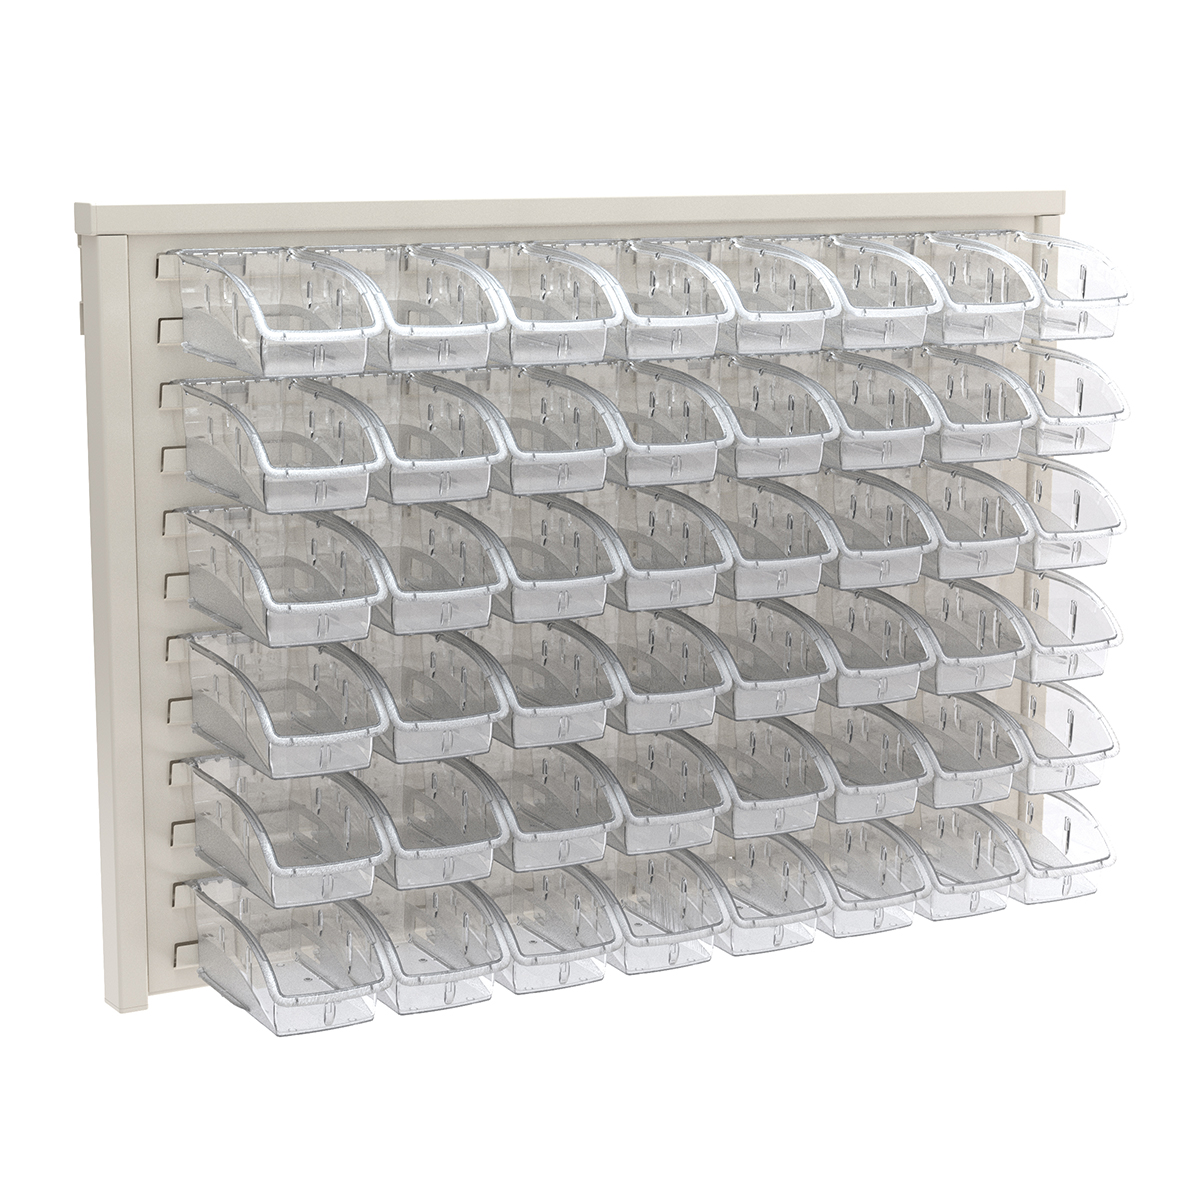 Item DISCONTINUED by Manufacturer.  ReadySpace Wall Rack w/ 48 InSight Bins 305A3, White/Clear (30536A3).  This item sold in carton quantities of 1.